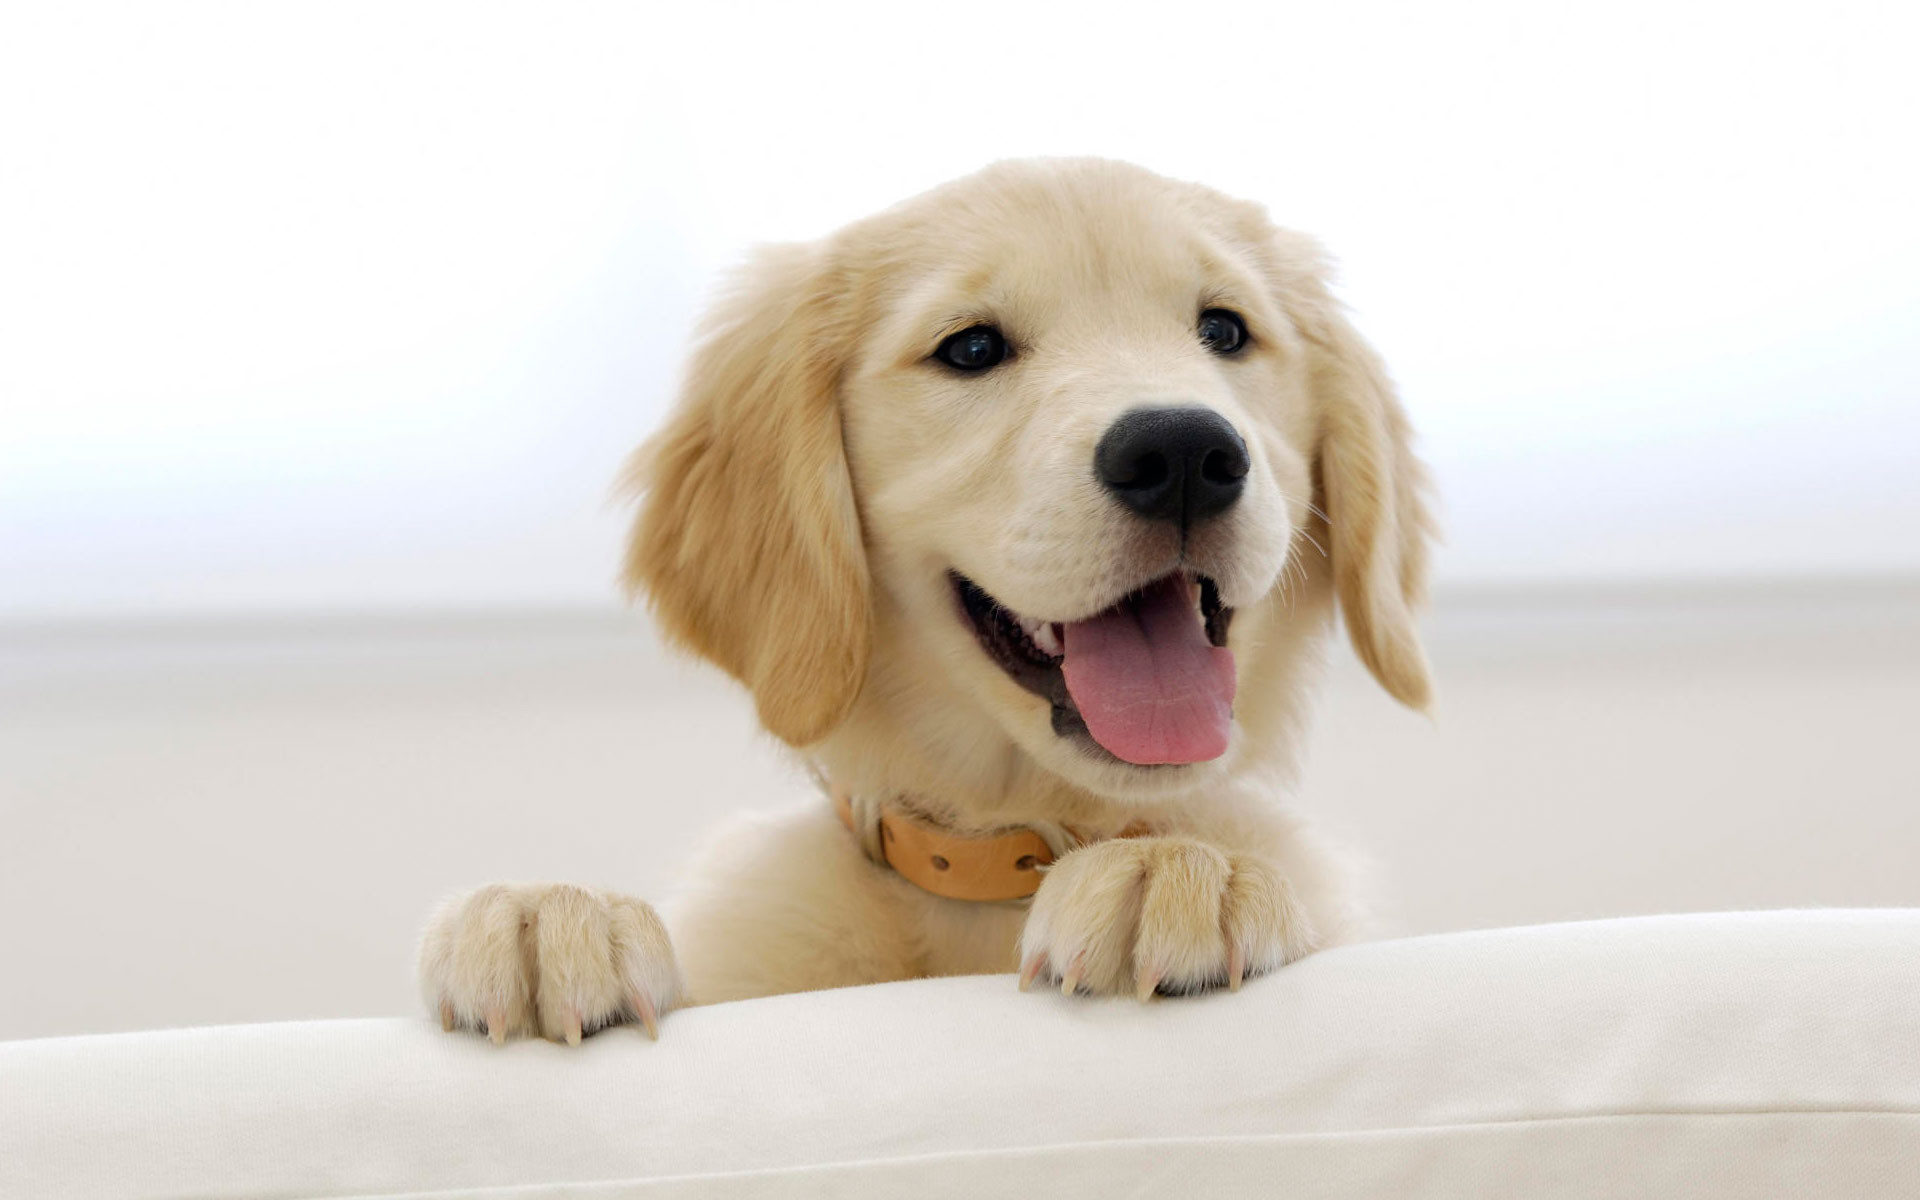 1920x1200 ... Stunning Golden Retriever Puppy Wallpapers | Hd Wallpapers as Winsome  Puppy Golden Retriever Wallpaper ...